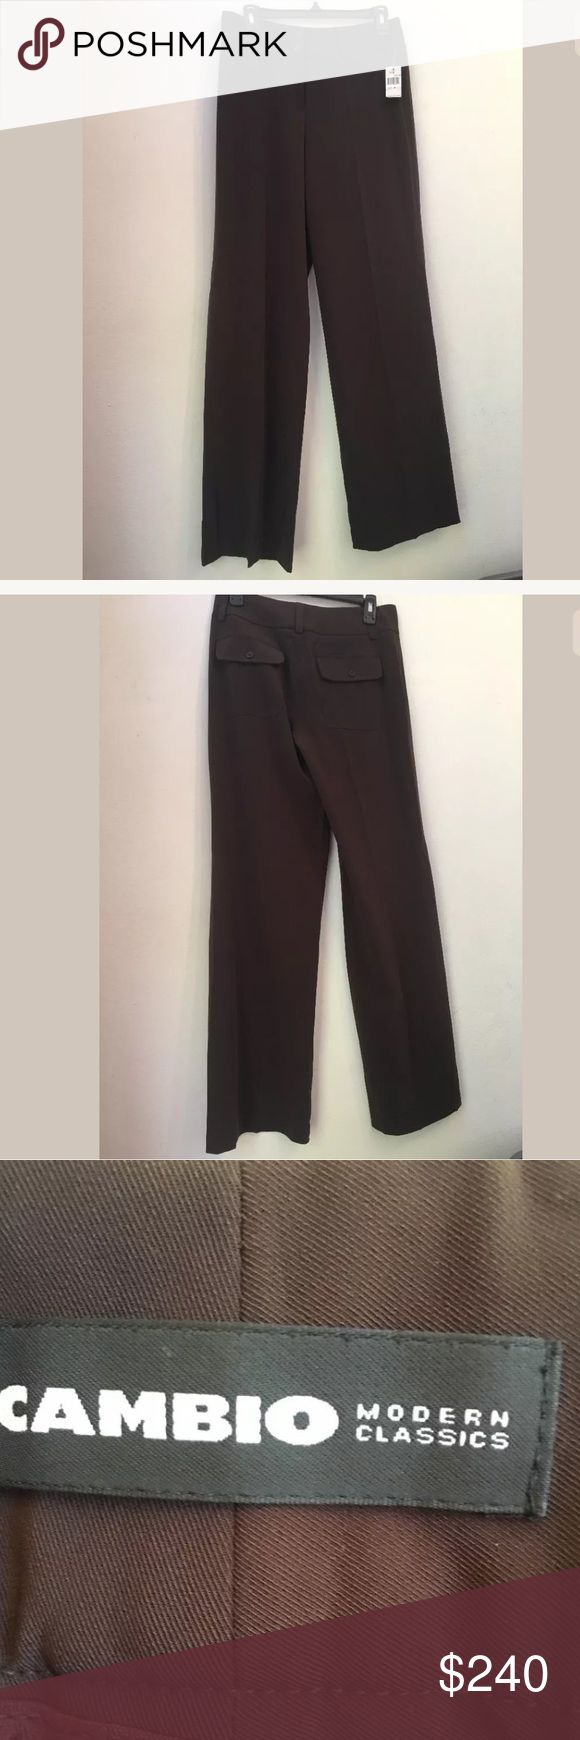 NWT $240 CAMBIO Solid Brown Tracey Dress Pants 6 NWT $240 CAMBIO C16 Solid Brown Tracey Dress Pants Size 6  Your satisfaction is our #1 priority.  This is why we ship twice daily Monday thru Saturday to get the item to you as quickly as possible!! :).  If for any reason you are not 100% satisfied please message us and we will work with you to make it right!!      Measurements: Waist: approx. 28 inches Inseam: approx. 33 inches  -Retails Price: $240 + TAX -Material: 90% Polyester, 10%…